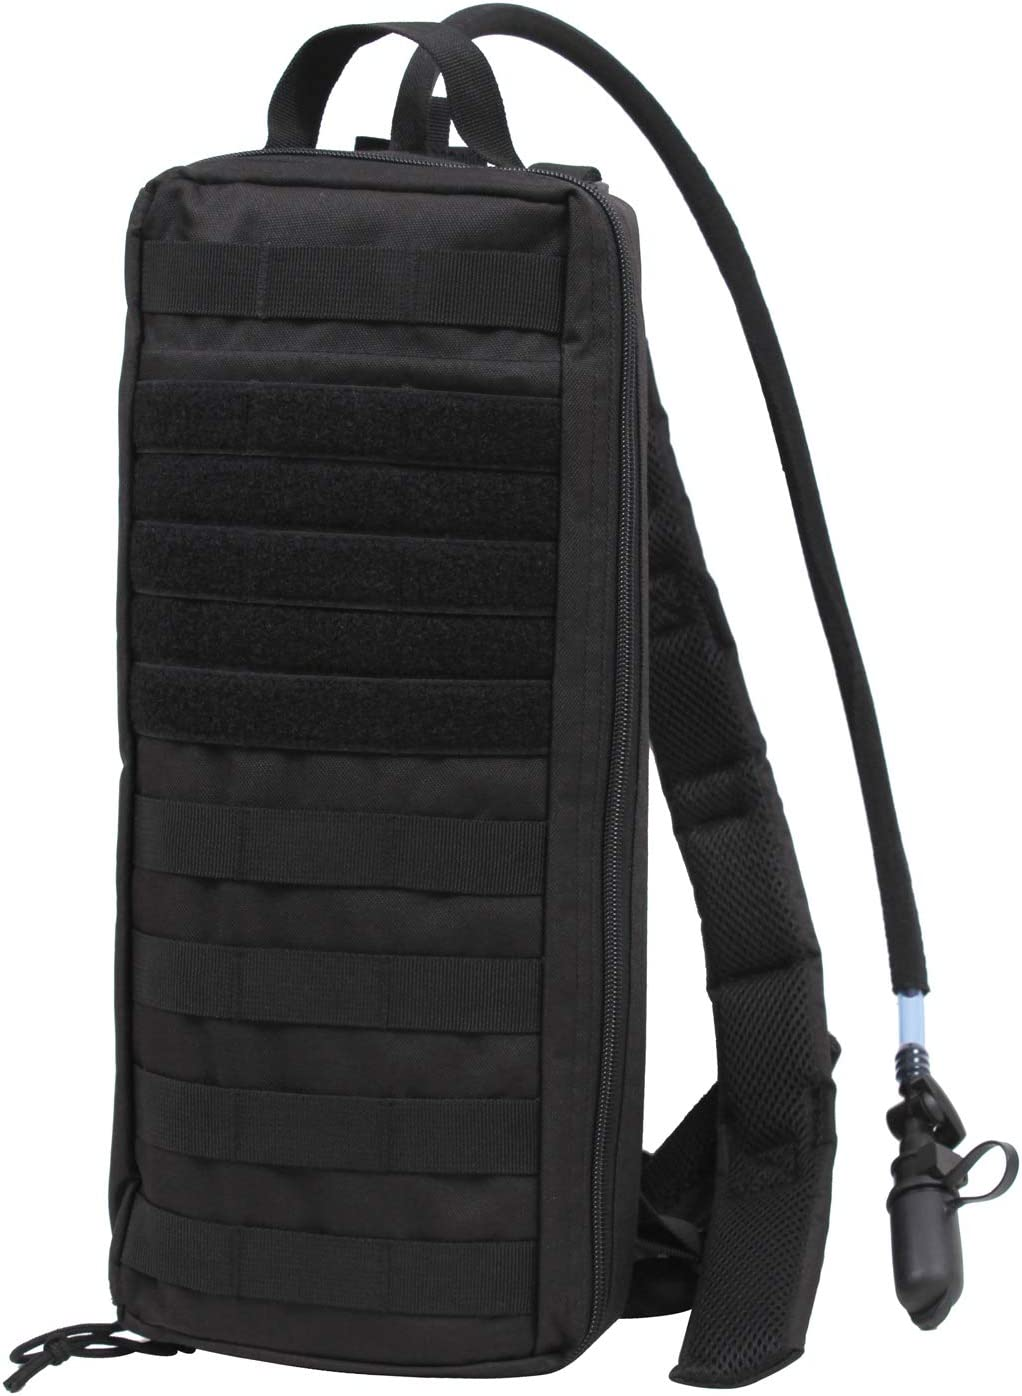 Rothco MOLLE Attachable Hydration Not Included Bladder Pack Sale SALE% OFF High order